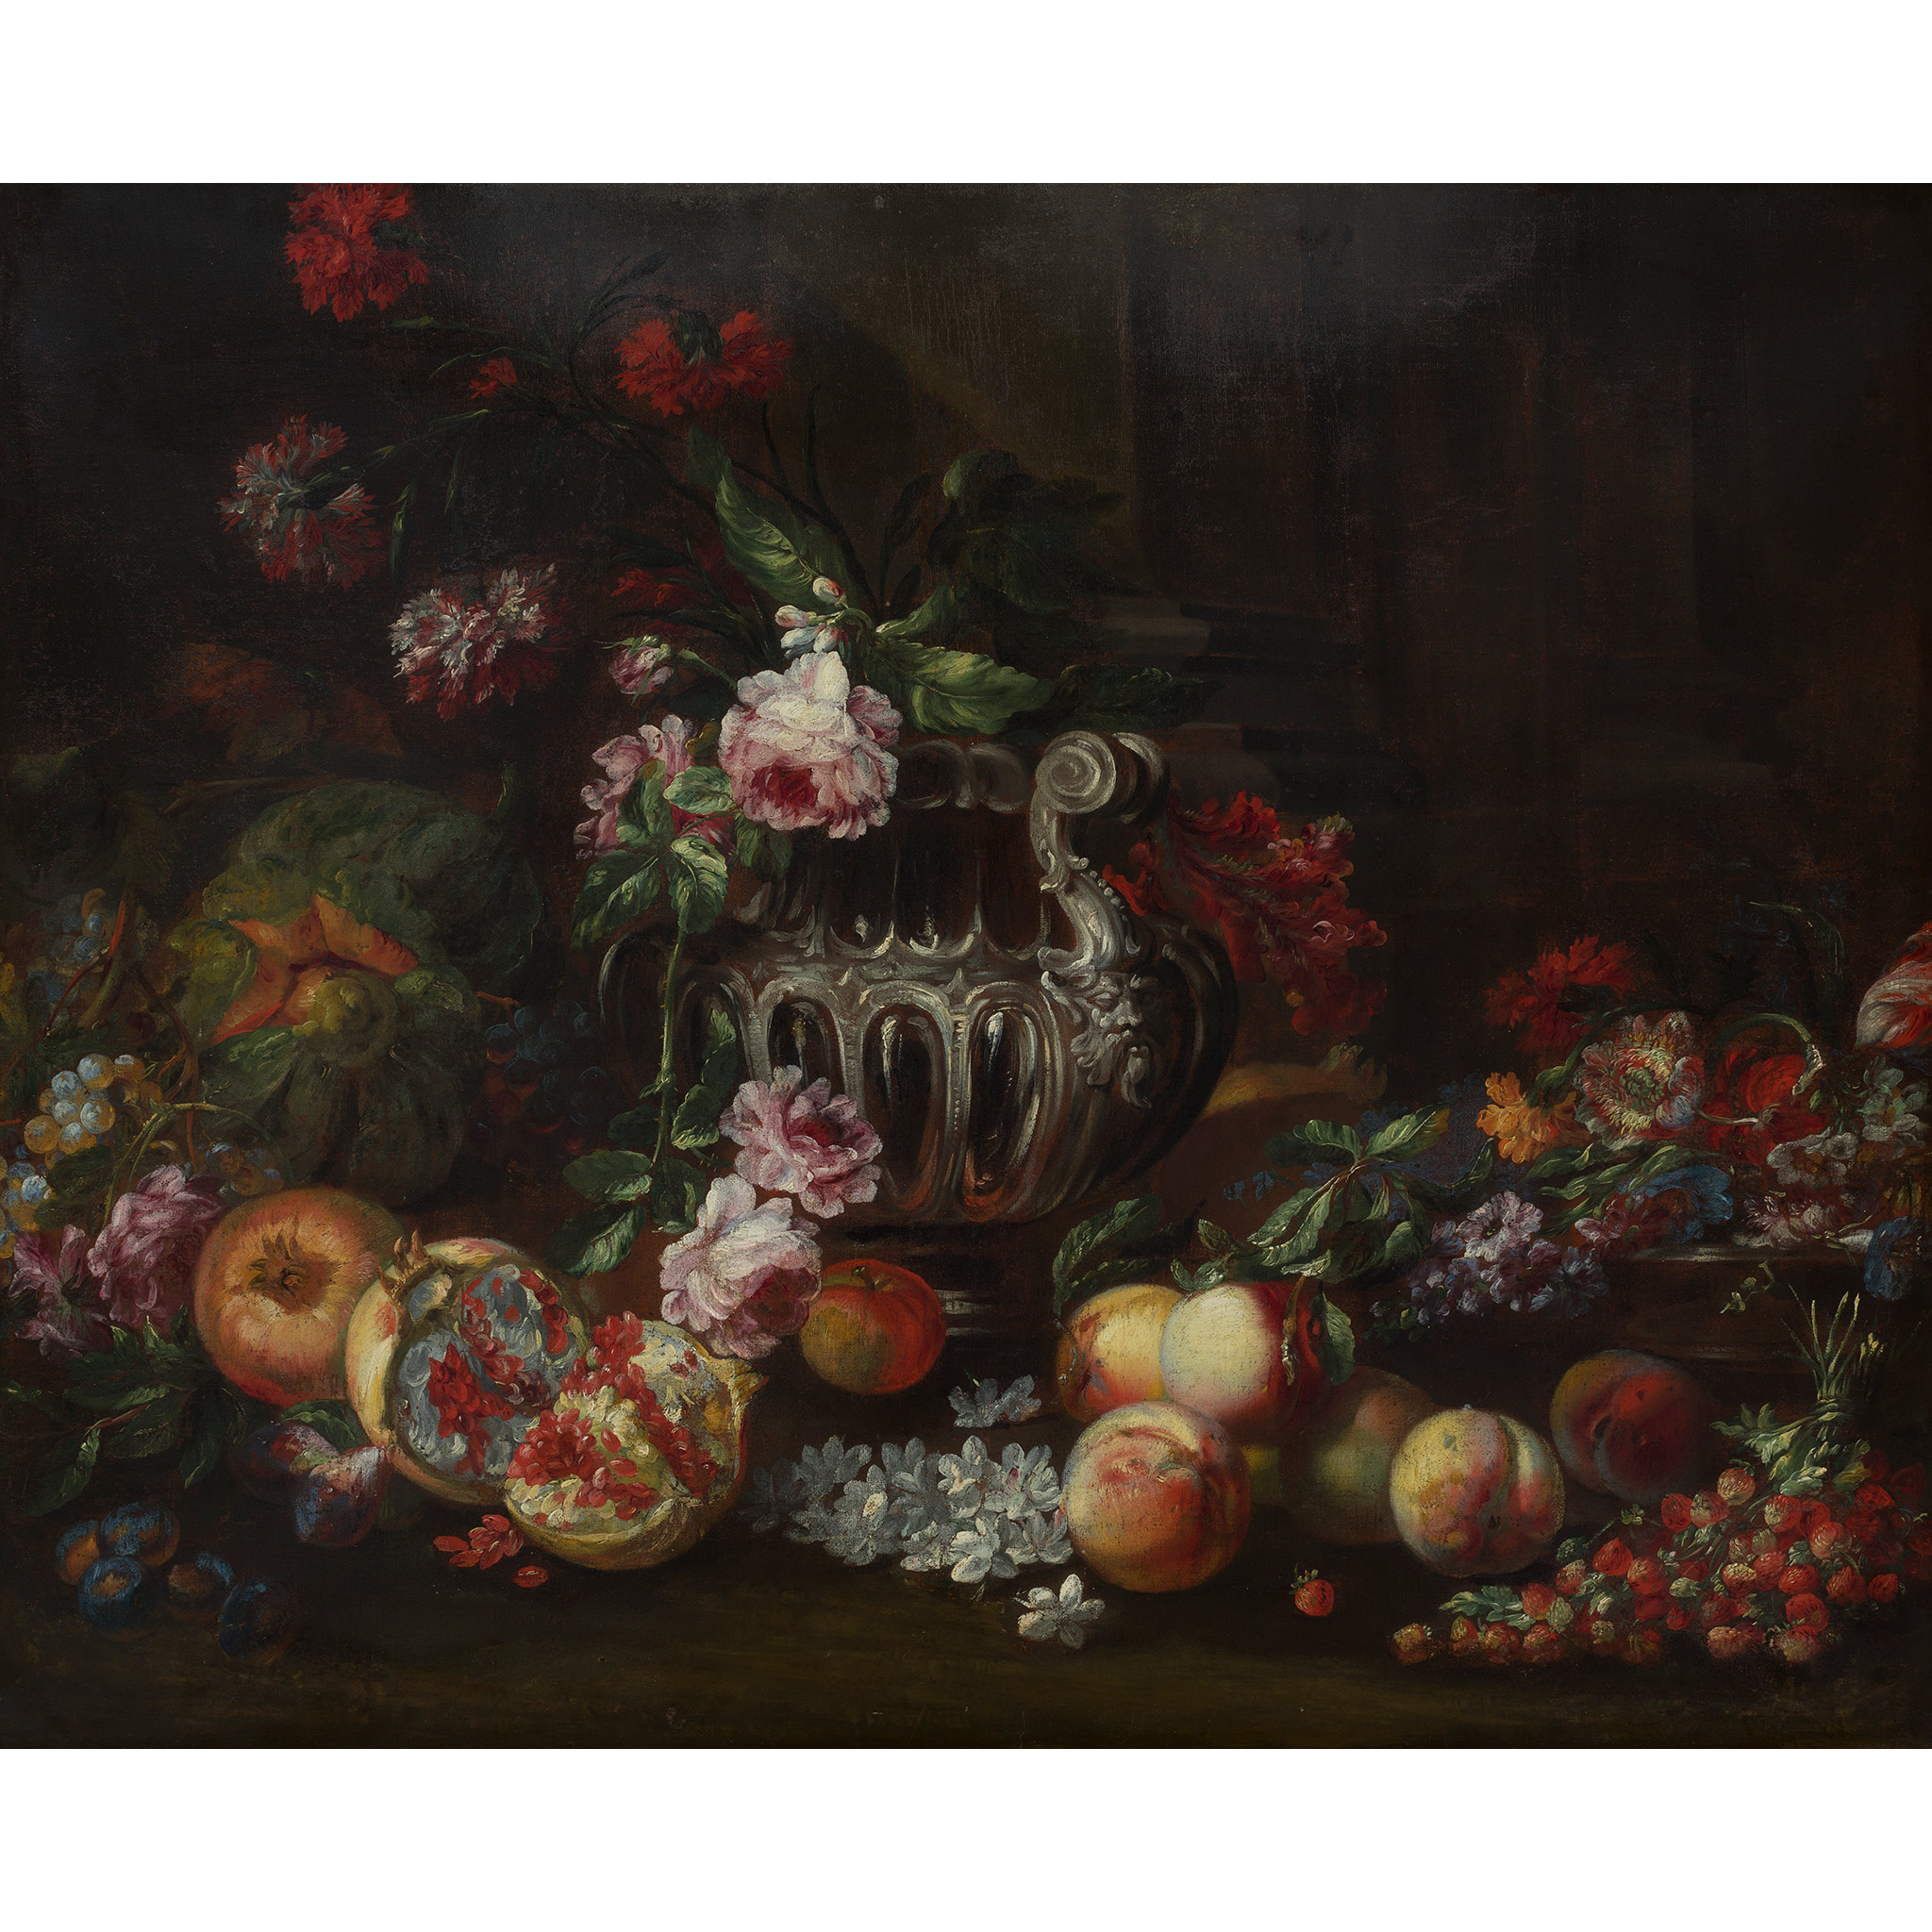 FOLLOWER OF MICHELANGELO DI CAMPIDOGLIO A STILL LIFE OF ASSORTED FRUIT AND FLOWERS WITH SILVER URN